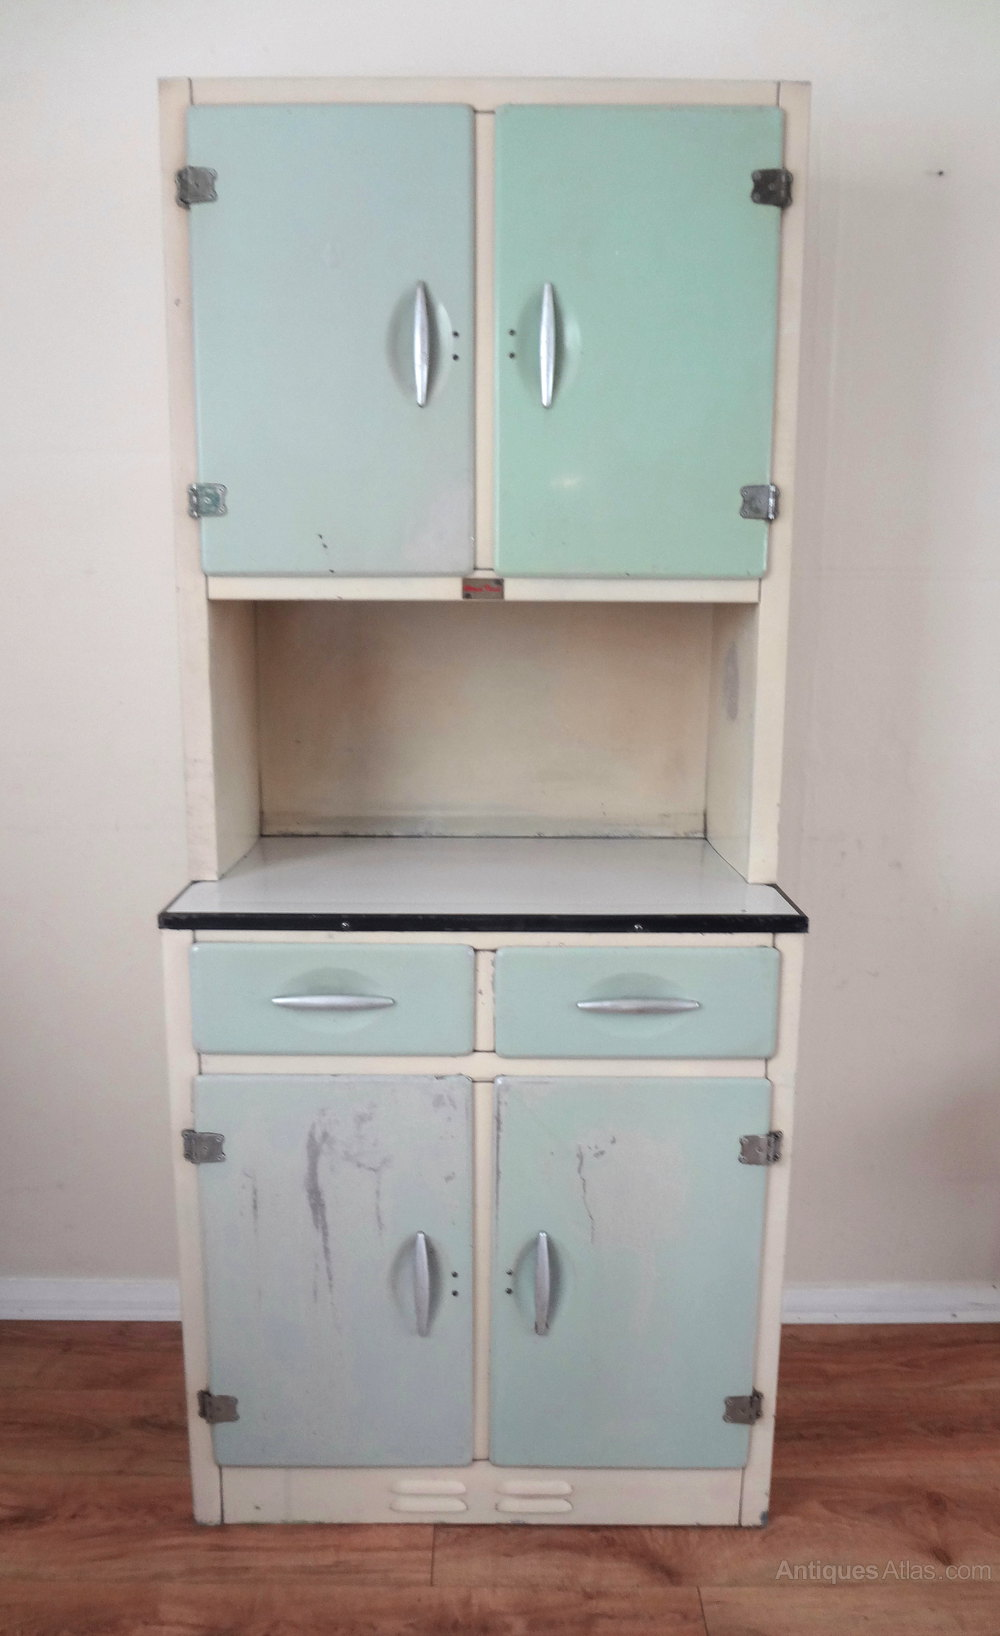 Antiques atlas retro kitchen larder cupboard for The kitchen cupboard